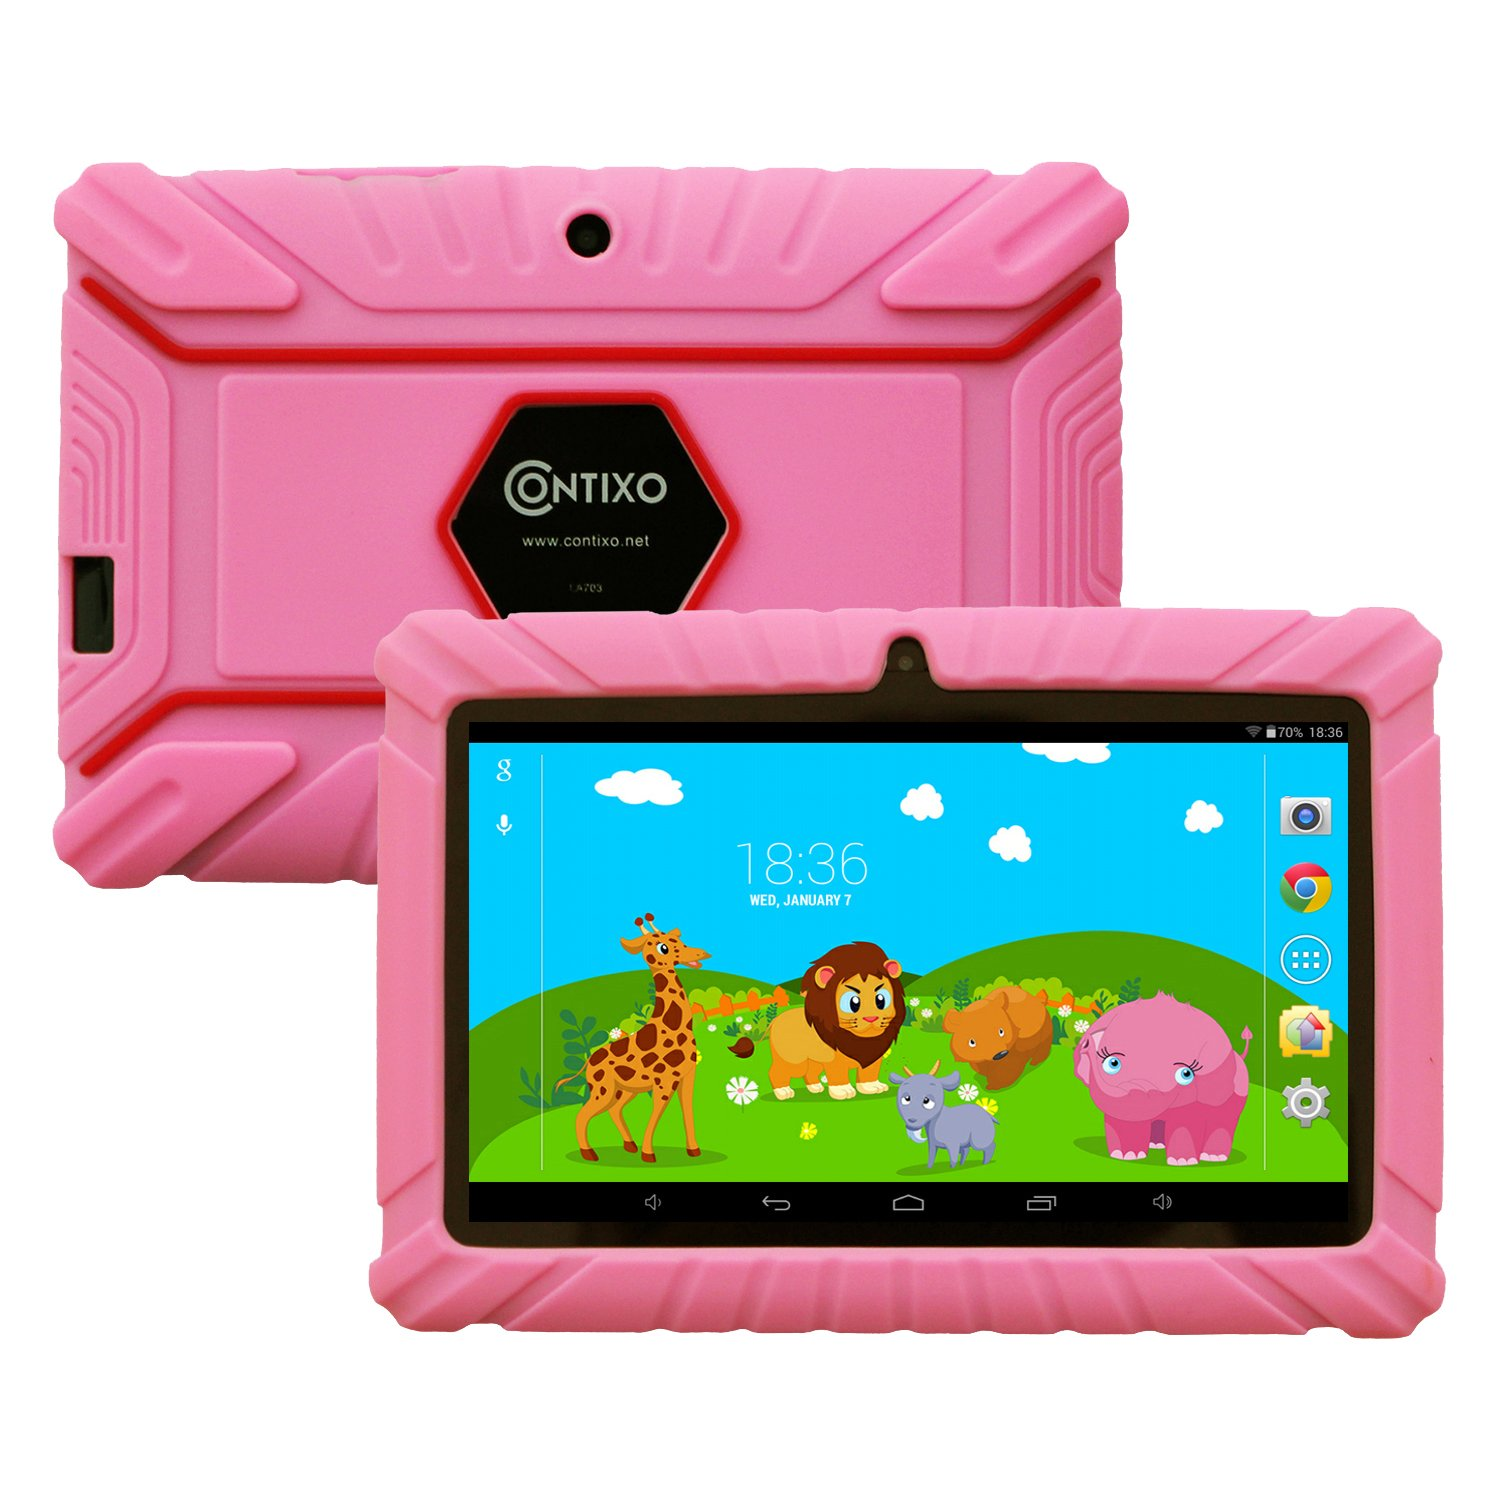 Contixo LA703-KIDS-2 7-Inch 8GB Kids Tablet Bundle with Kids-Place Parental Control and Kid-Proof Case (Pink)